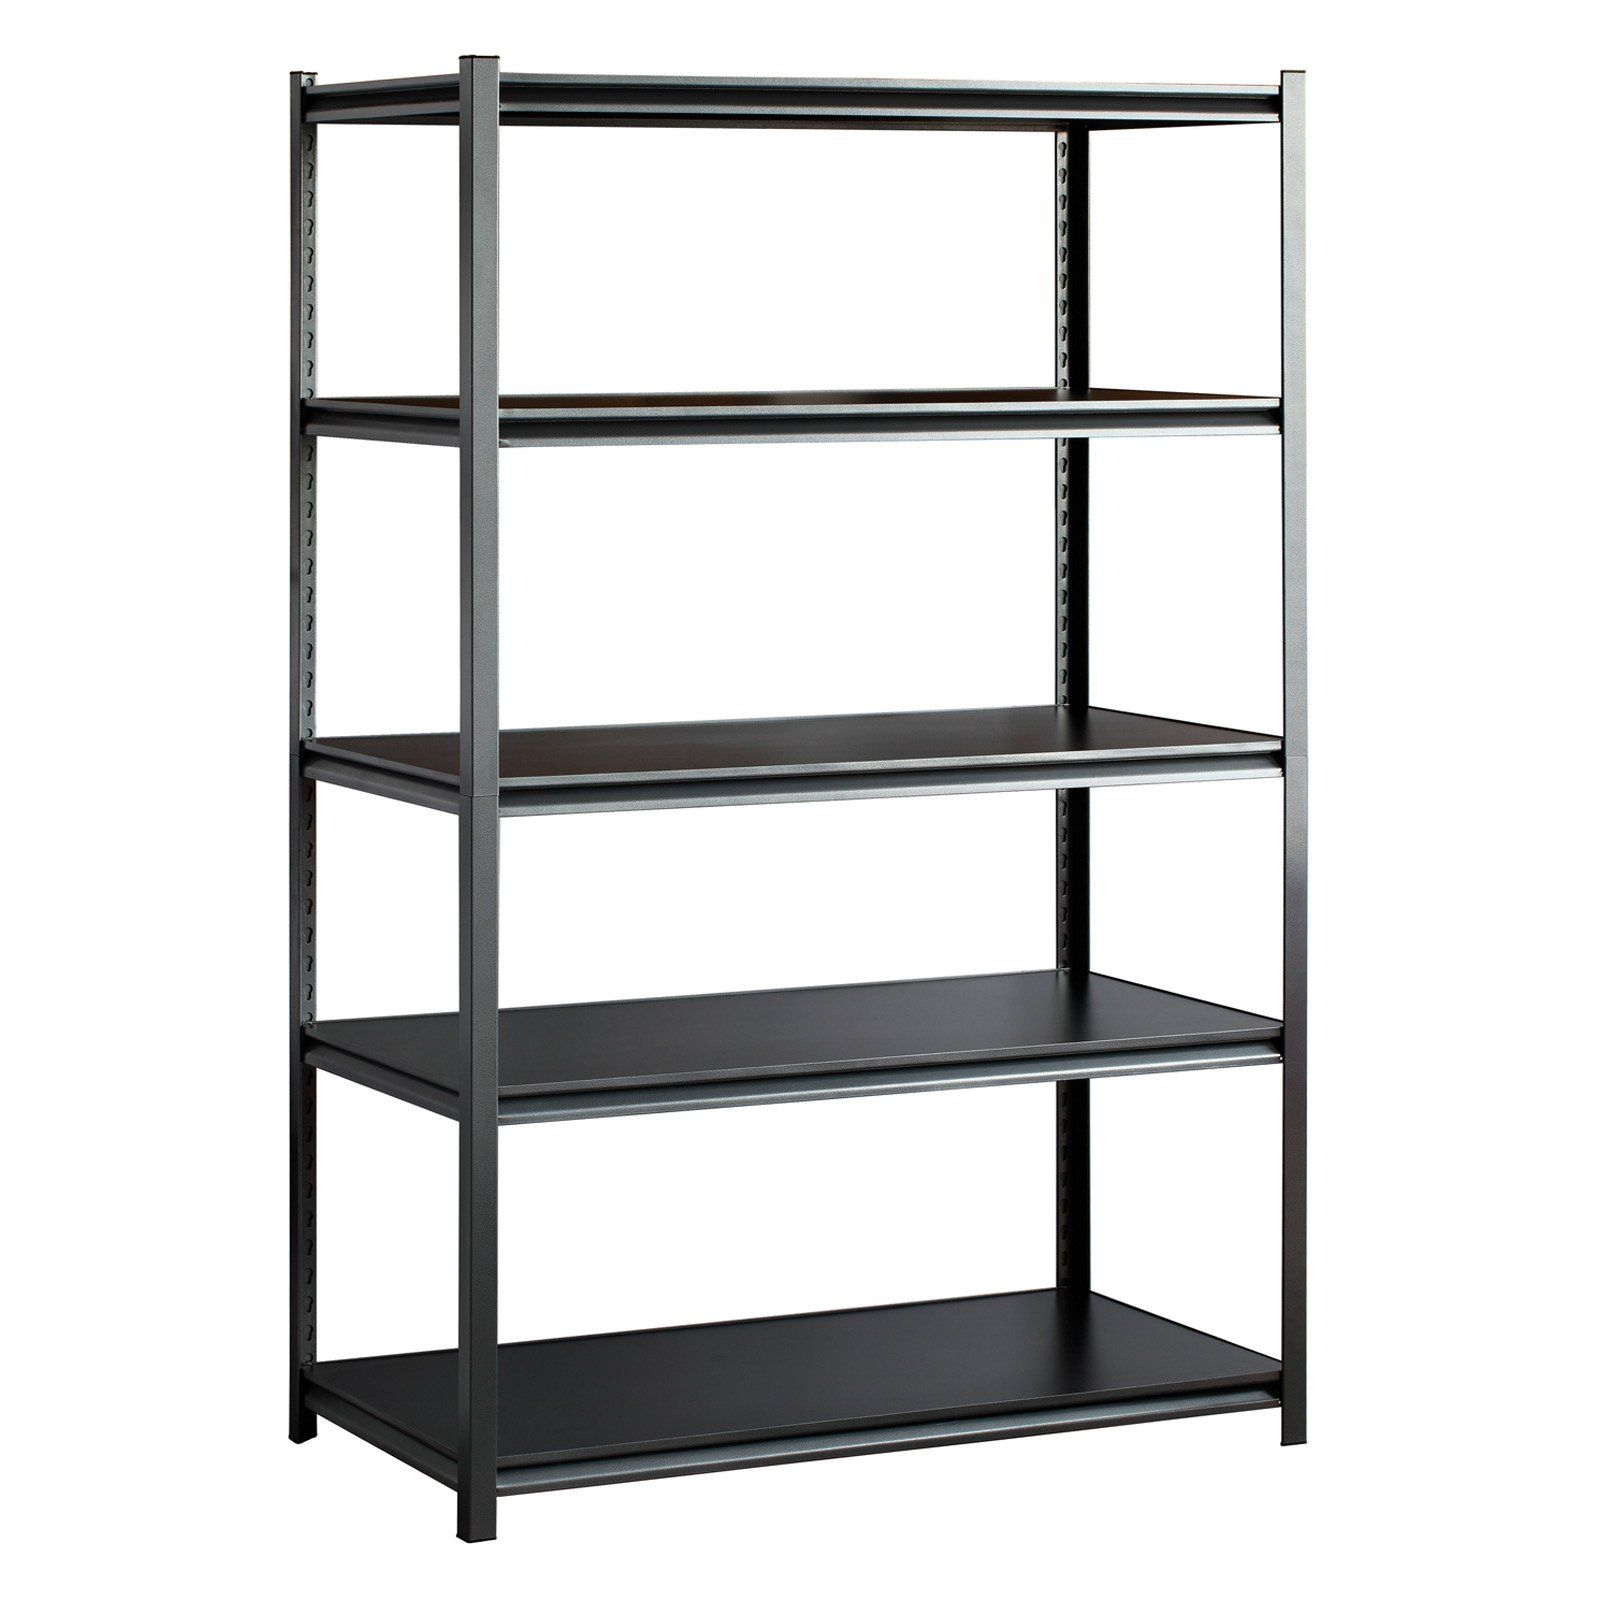 Edsal 5 shelf heavy duty steel shelving - The Silver Vein Adjustable Shelving Unit Features A Satin Finish That Blends Flawlessly With Existing Furniture 5 Shelf Heavy Duty Steel